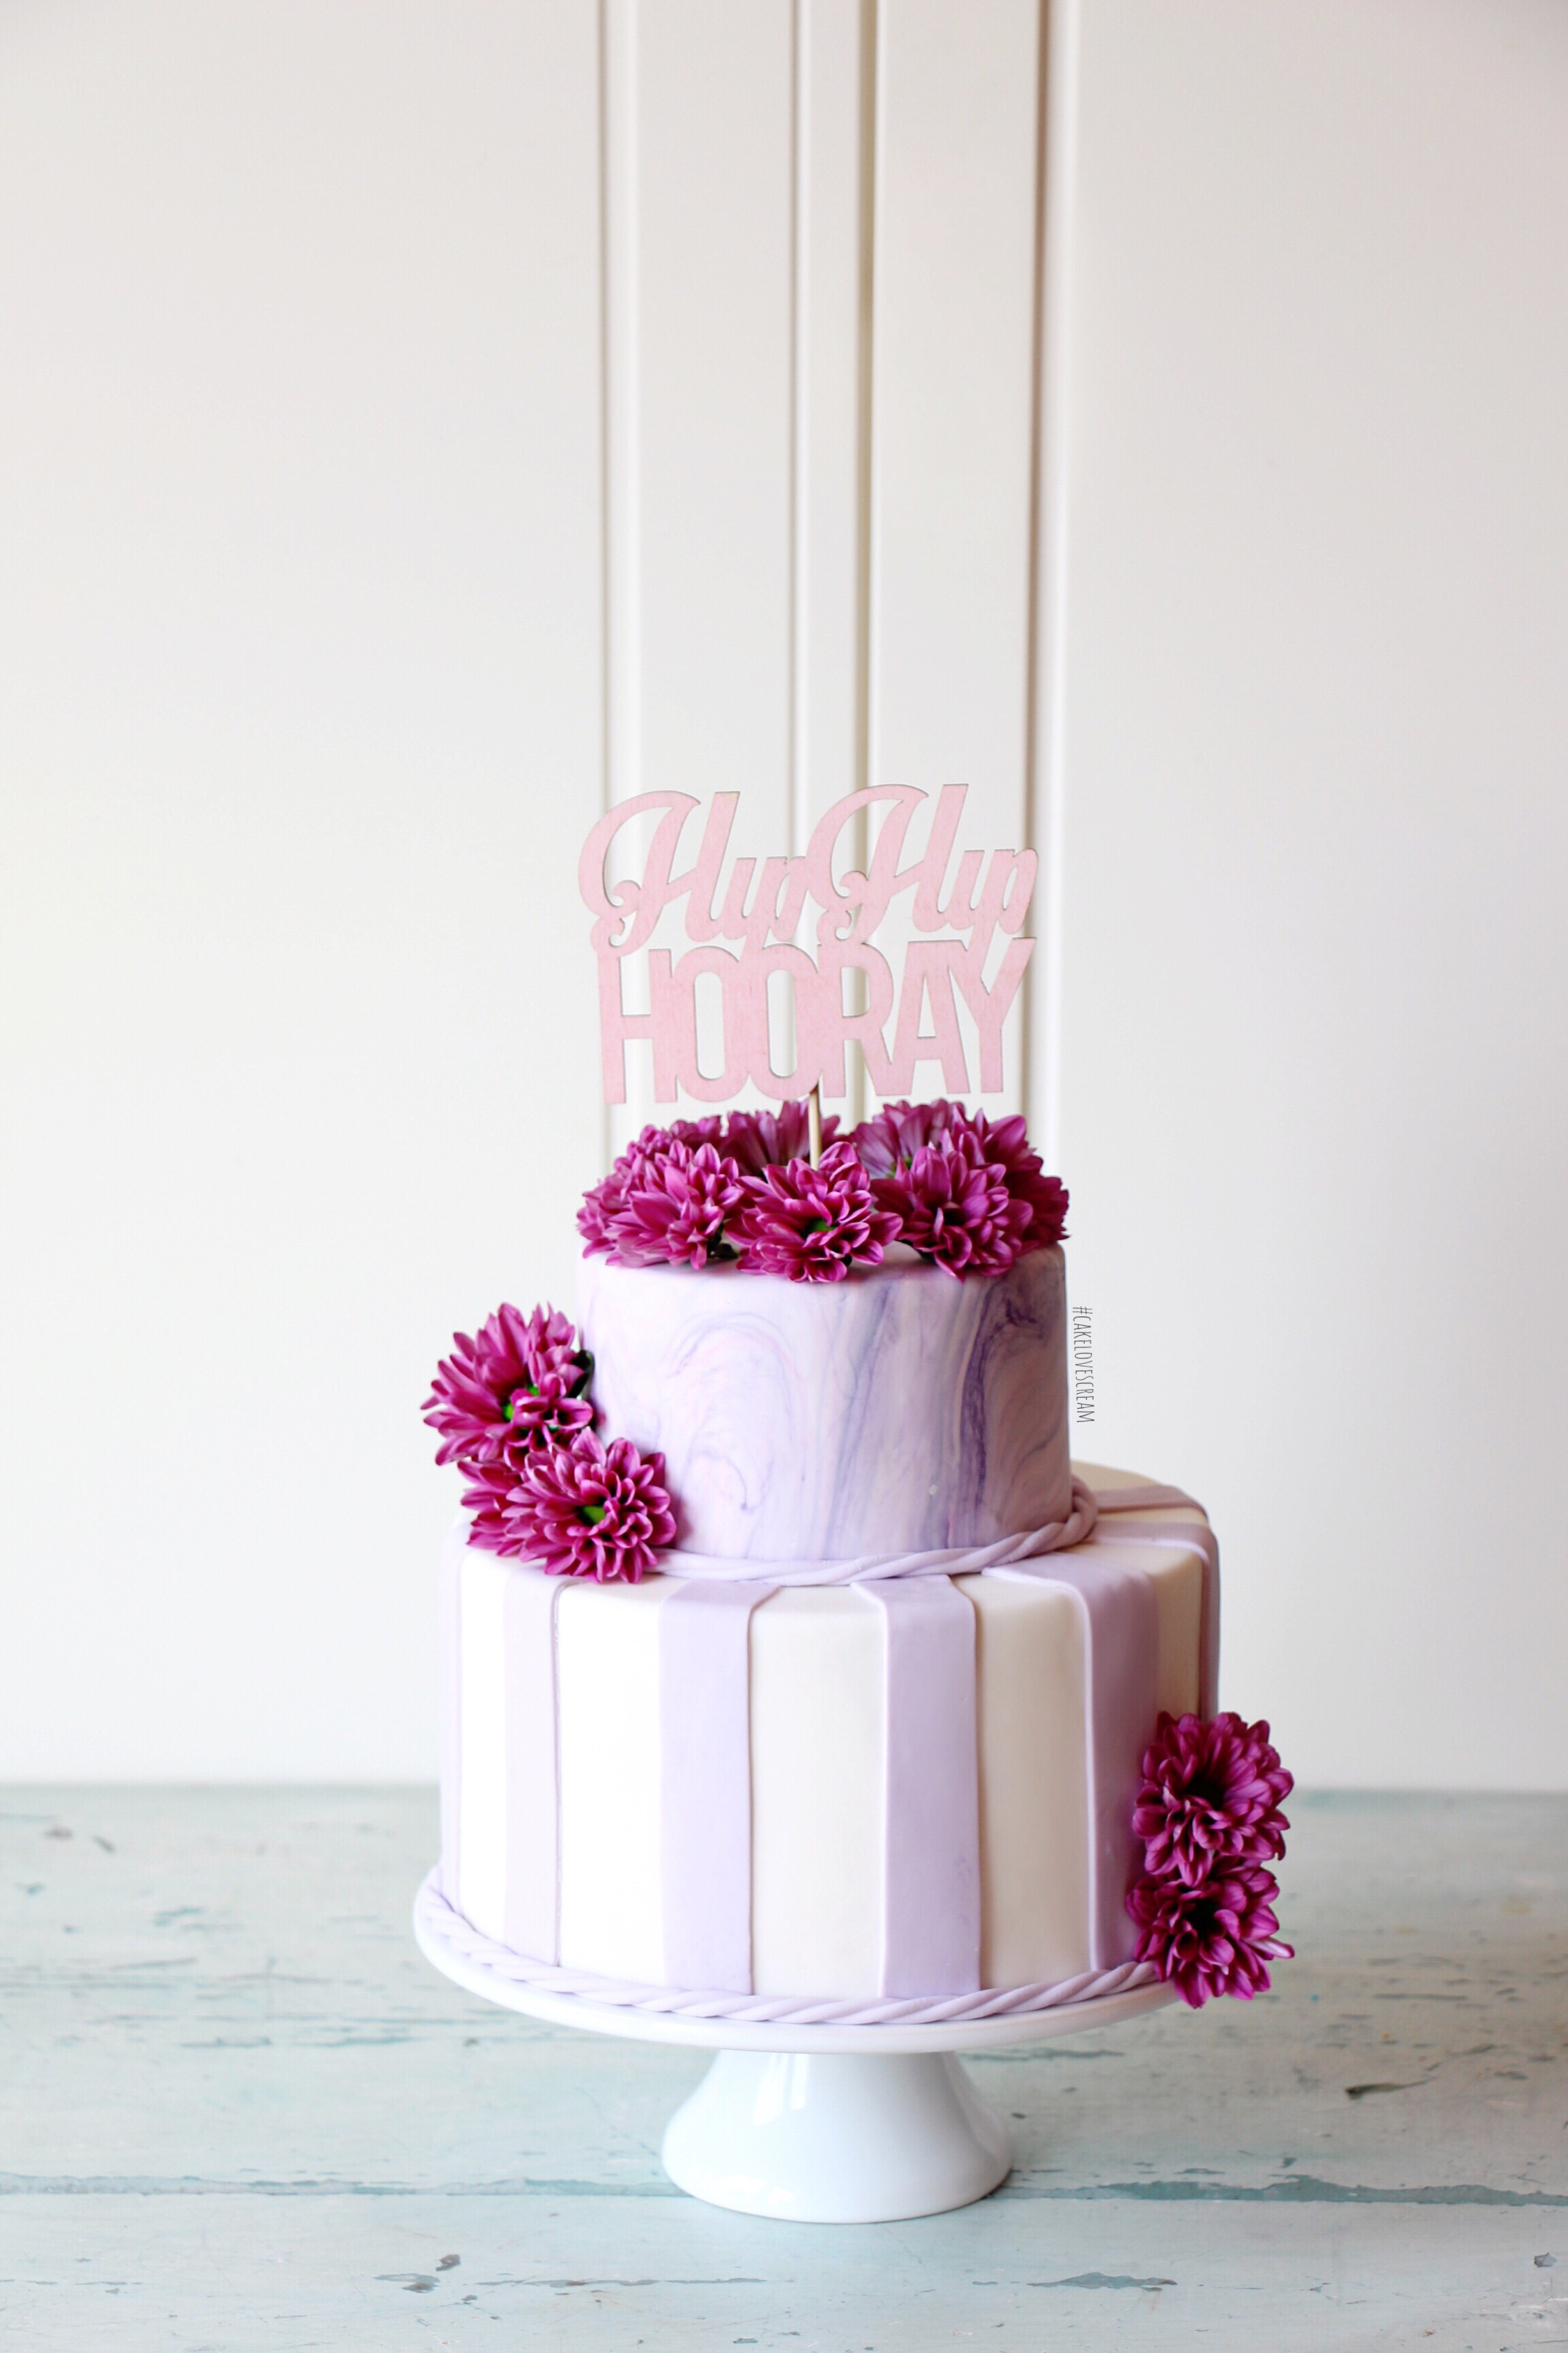 Purple and white striped cake with sugar flowers